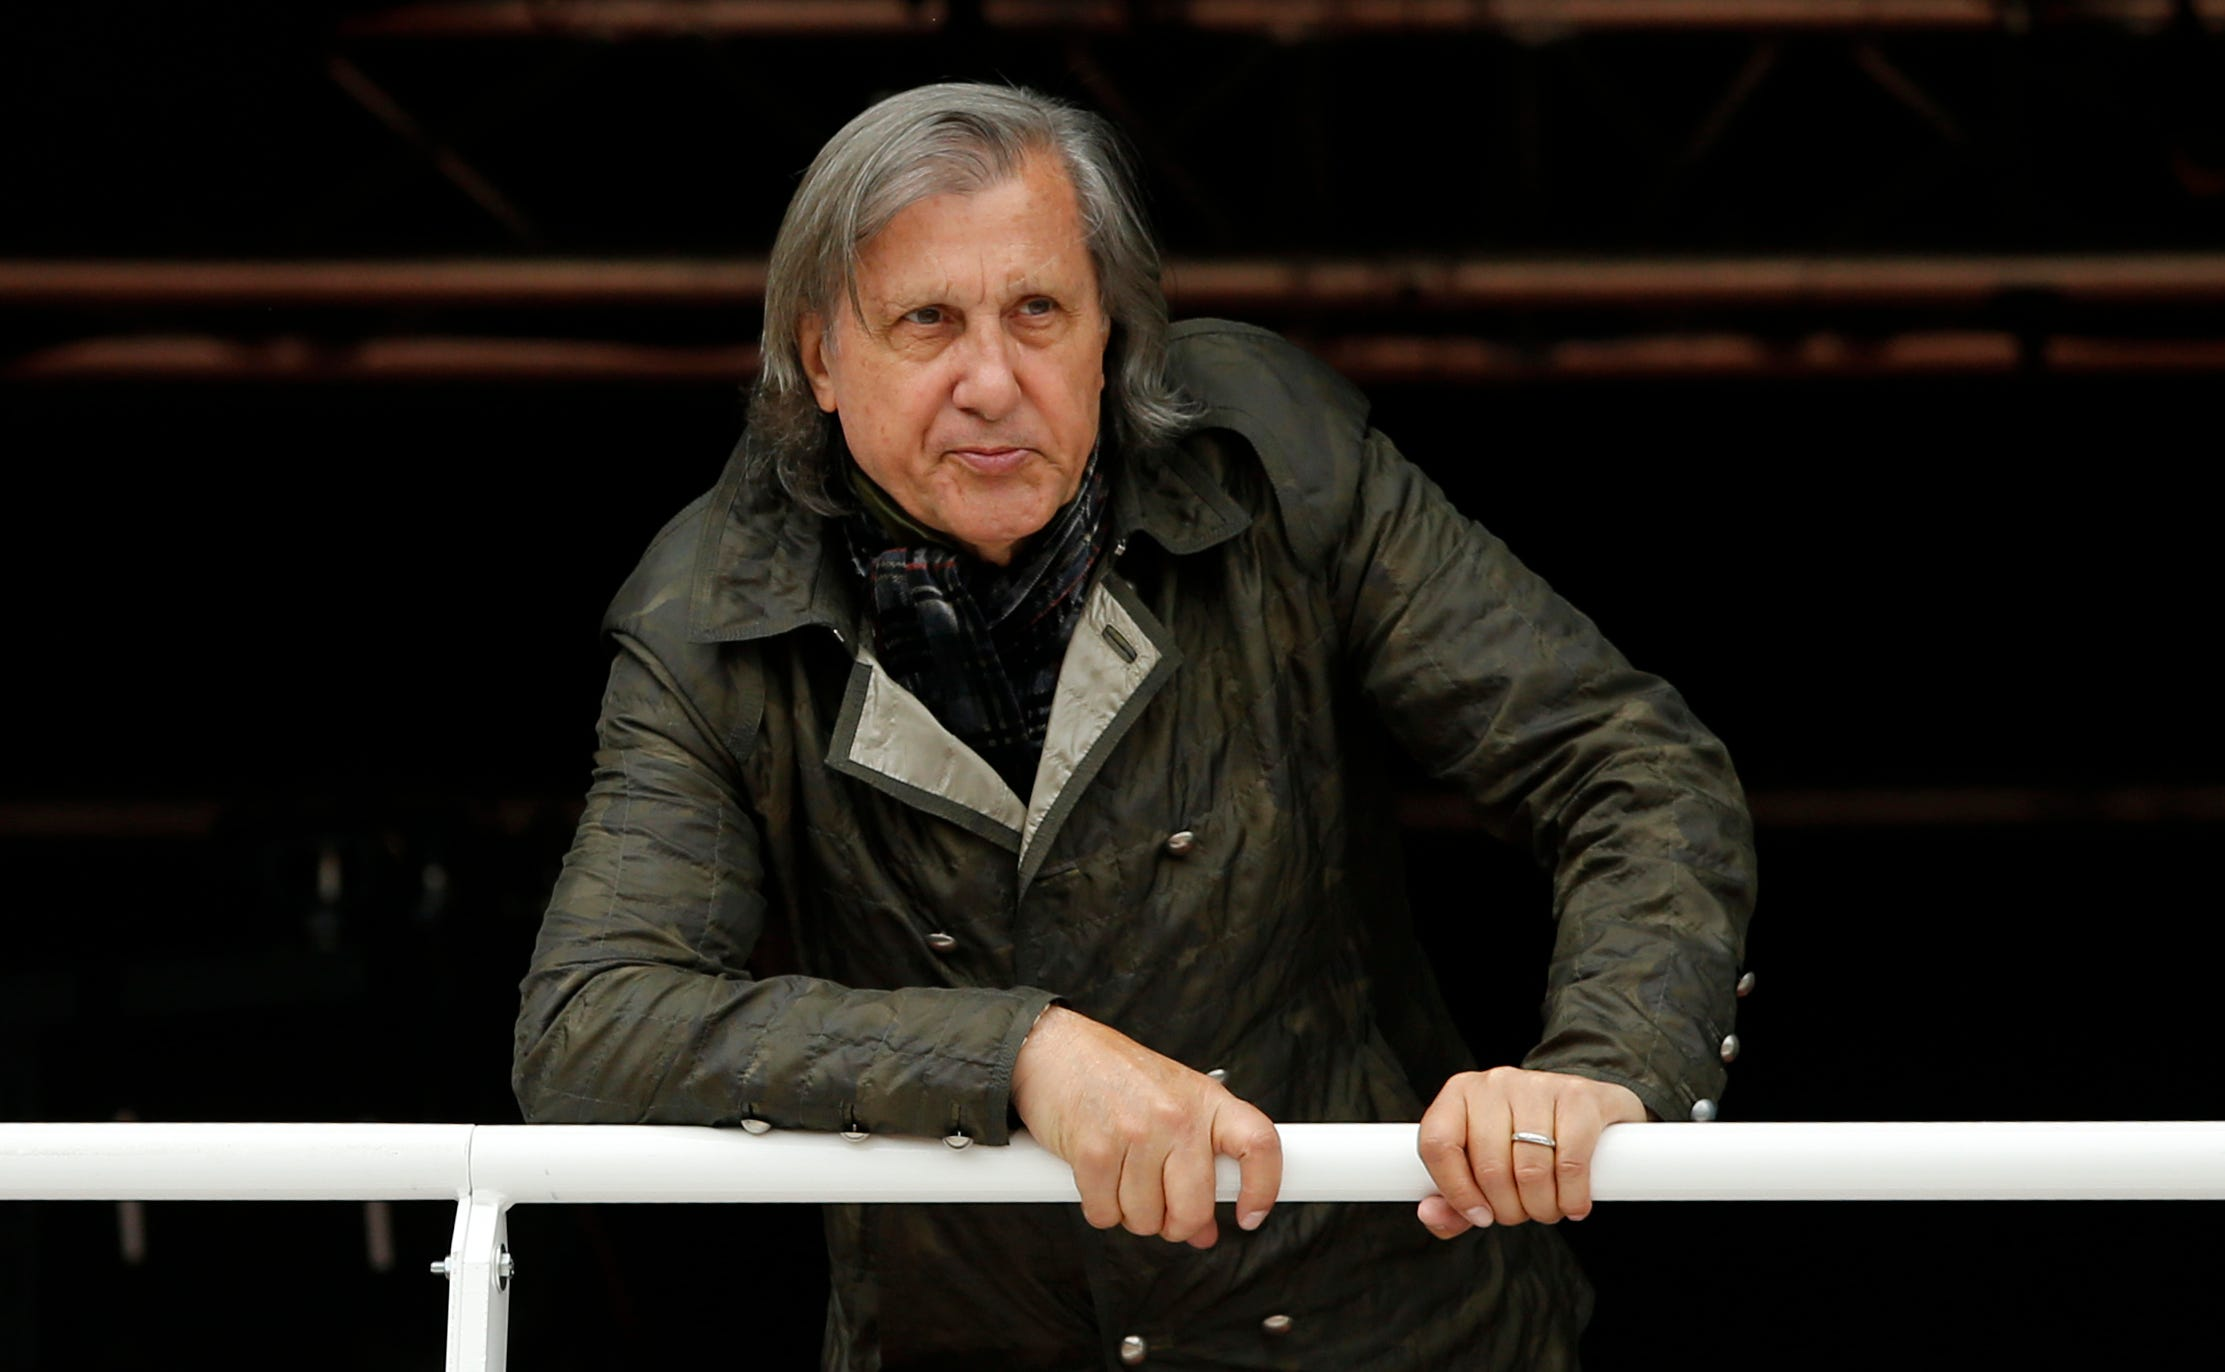 Serena Williams responds to Ilie Nastase's racist remarks